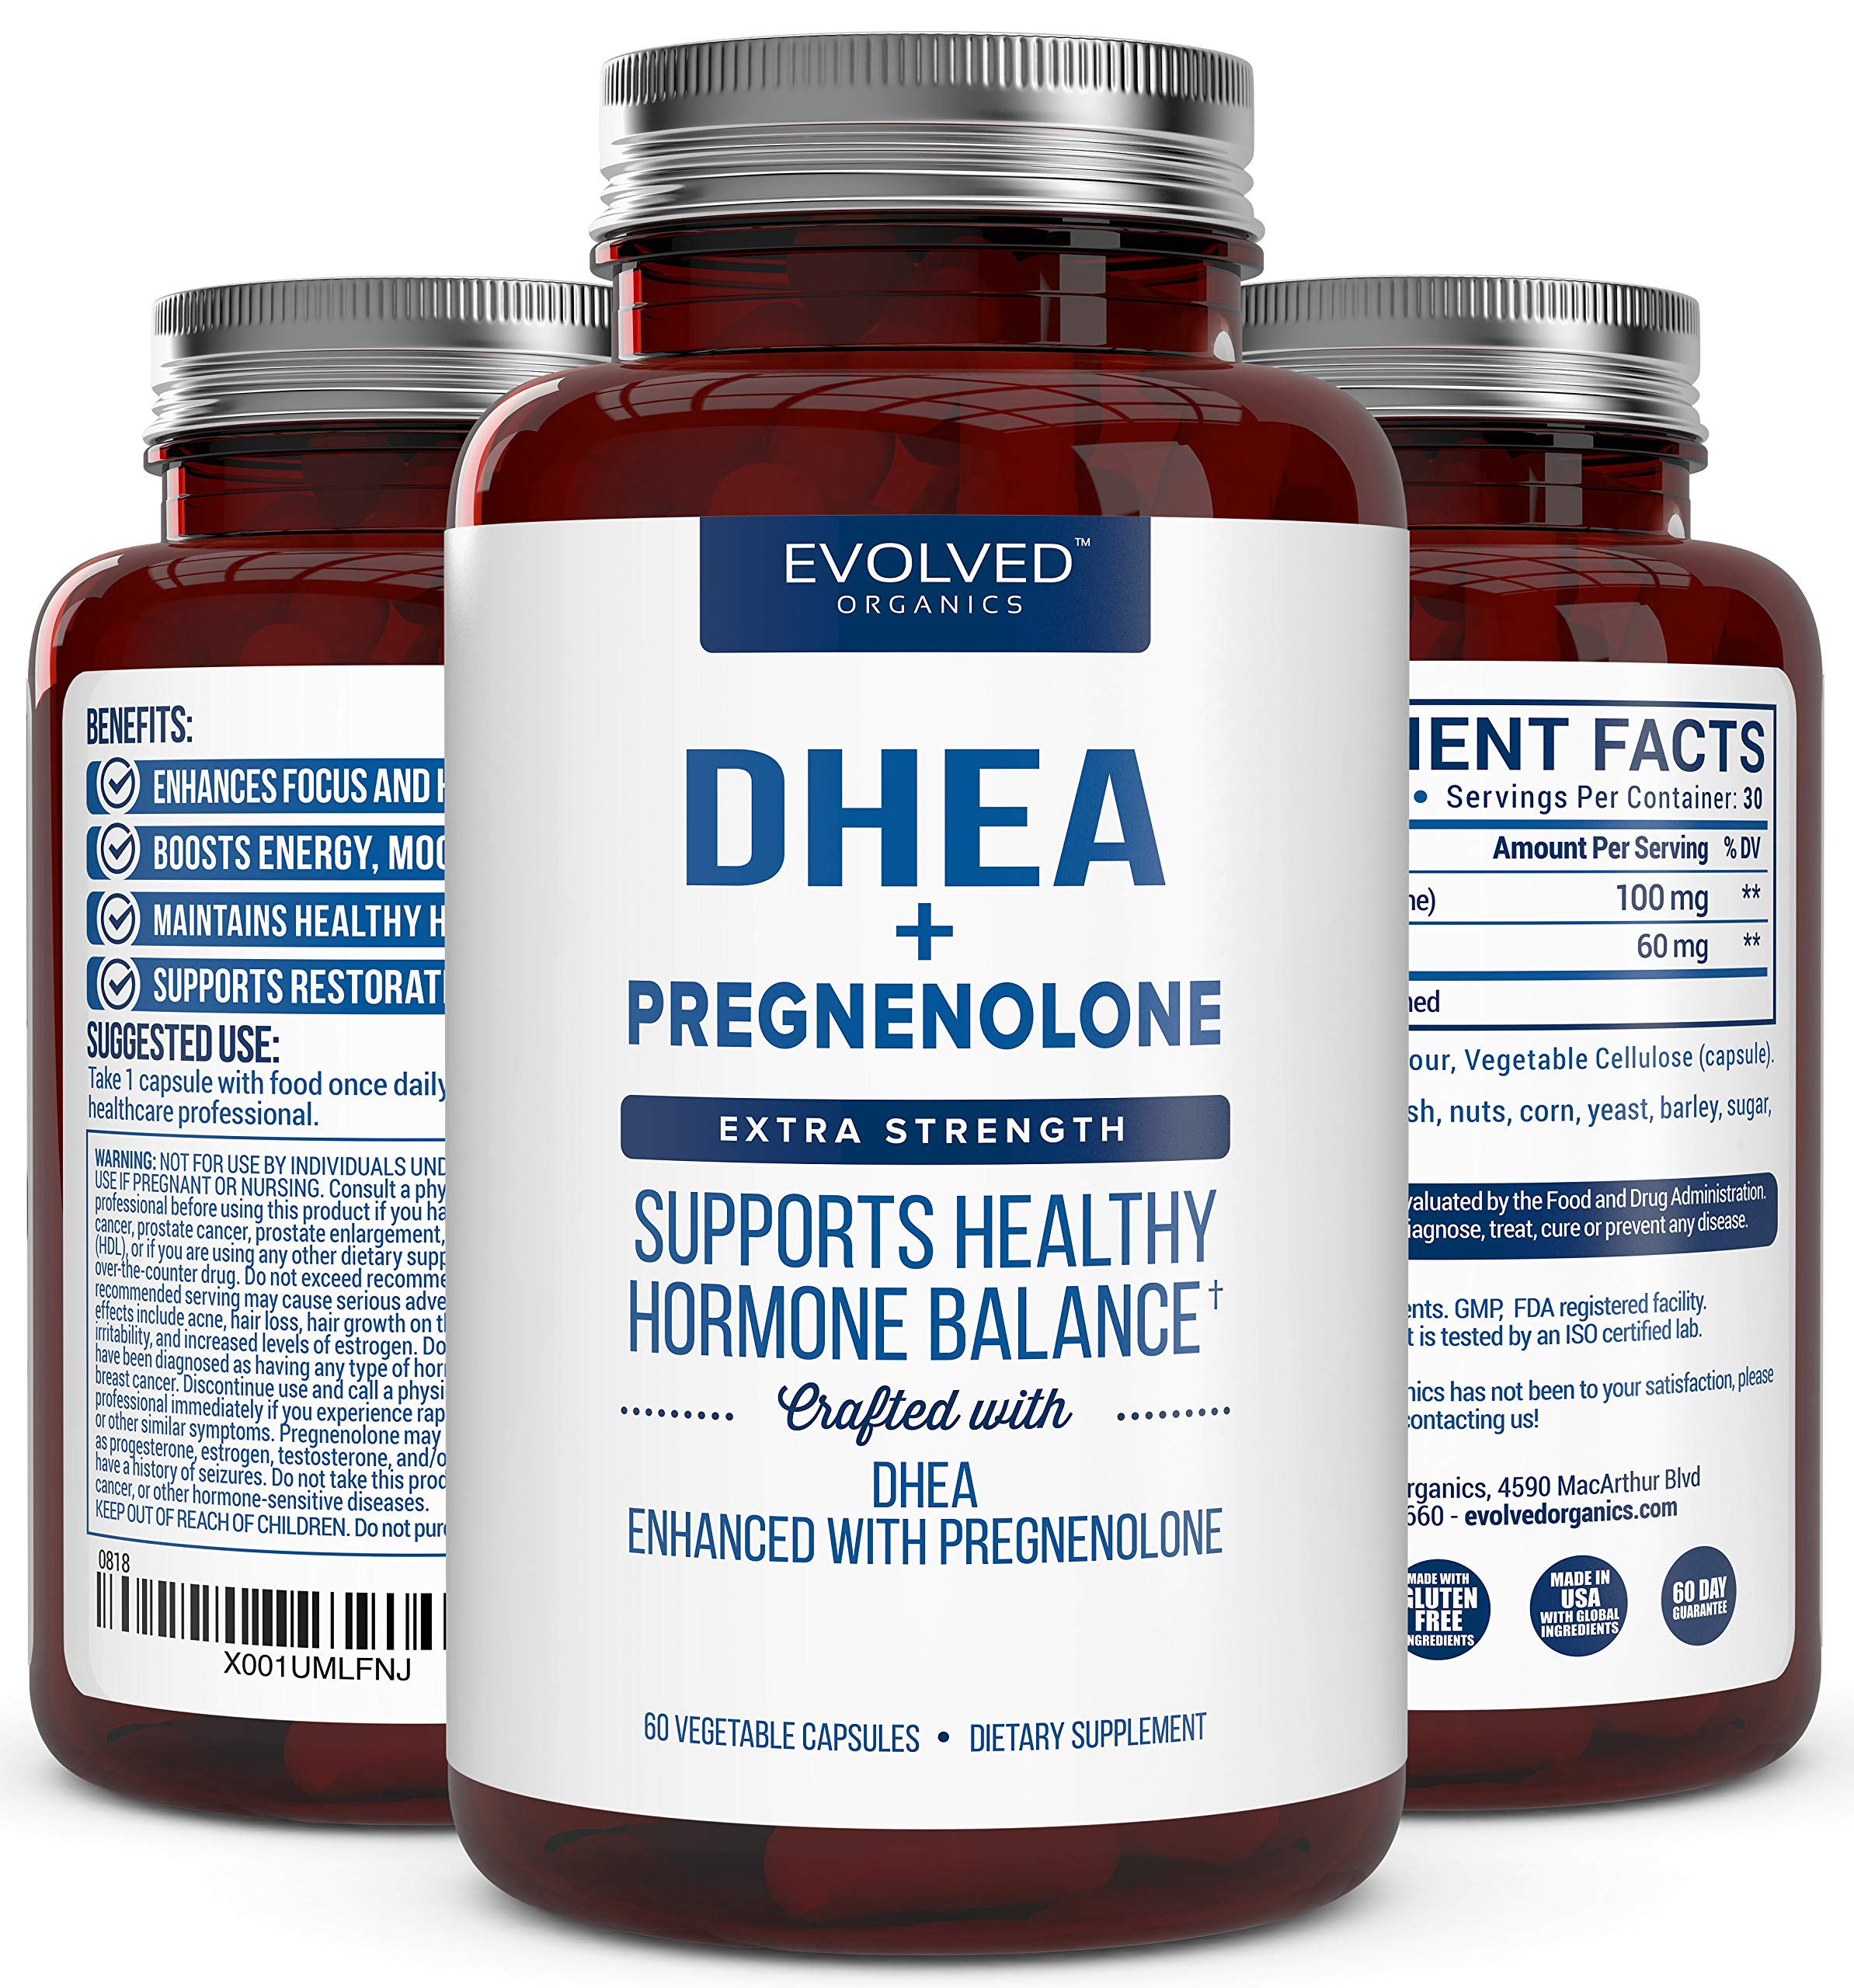 Extra Strength DHEA 100mg Supplement with Pregnenolone 60mg -Supports Hormone Balance, Lean Muscle Mass, Energy, Mood, Sleep, and Healthy Aging in Men and Women